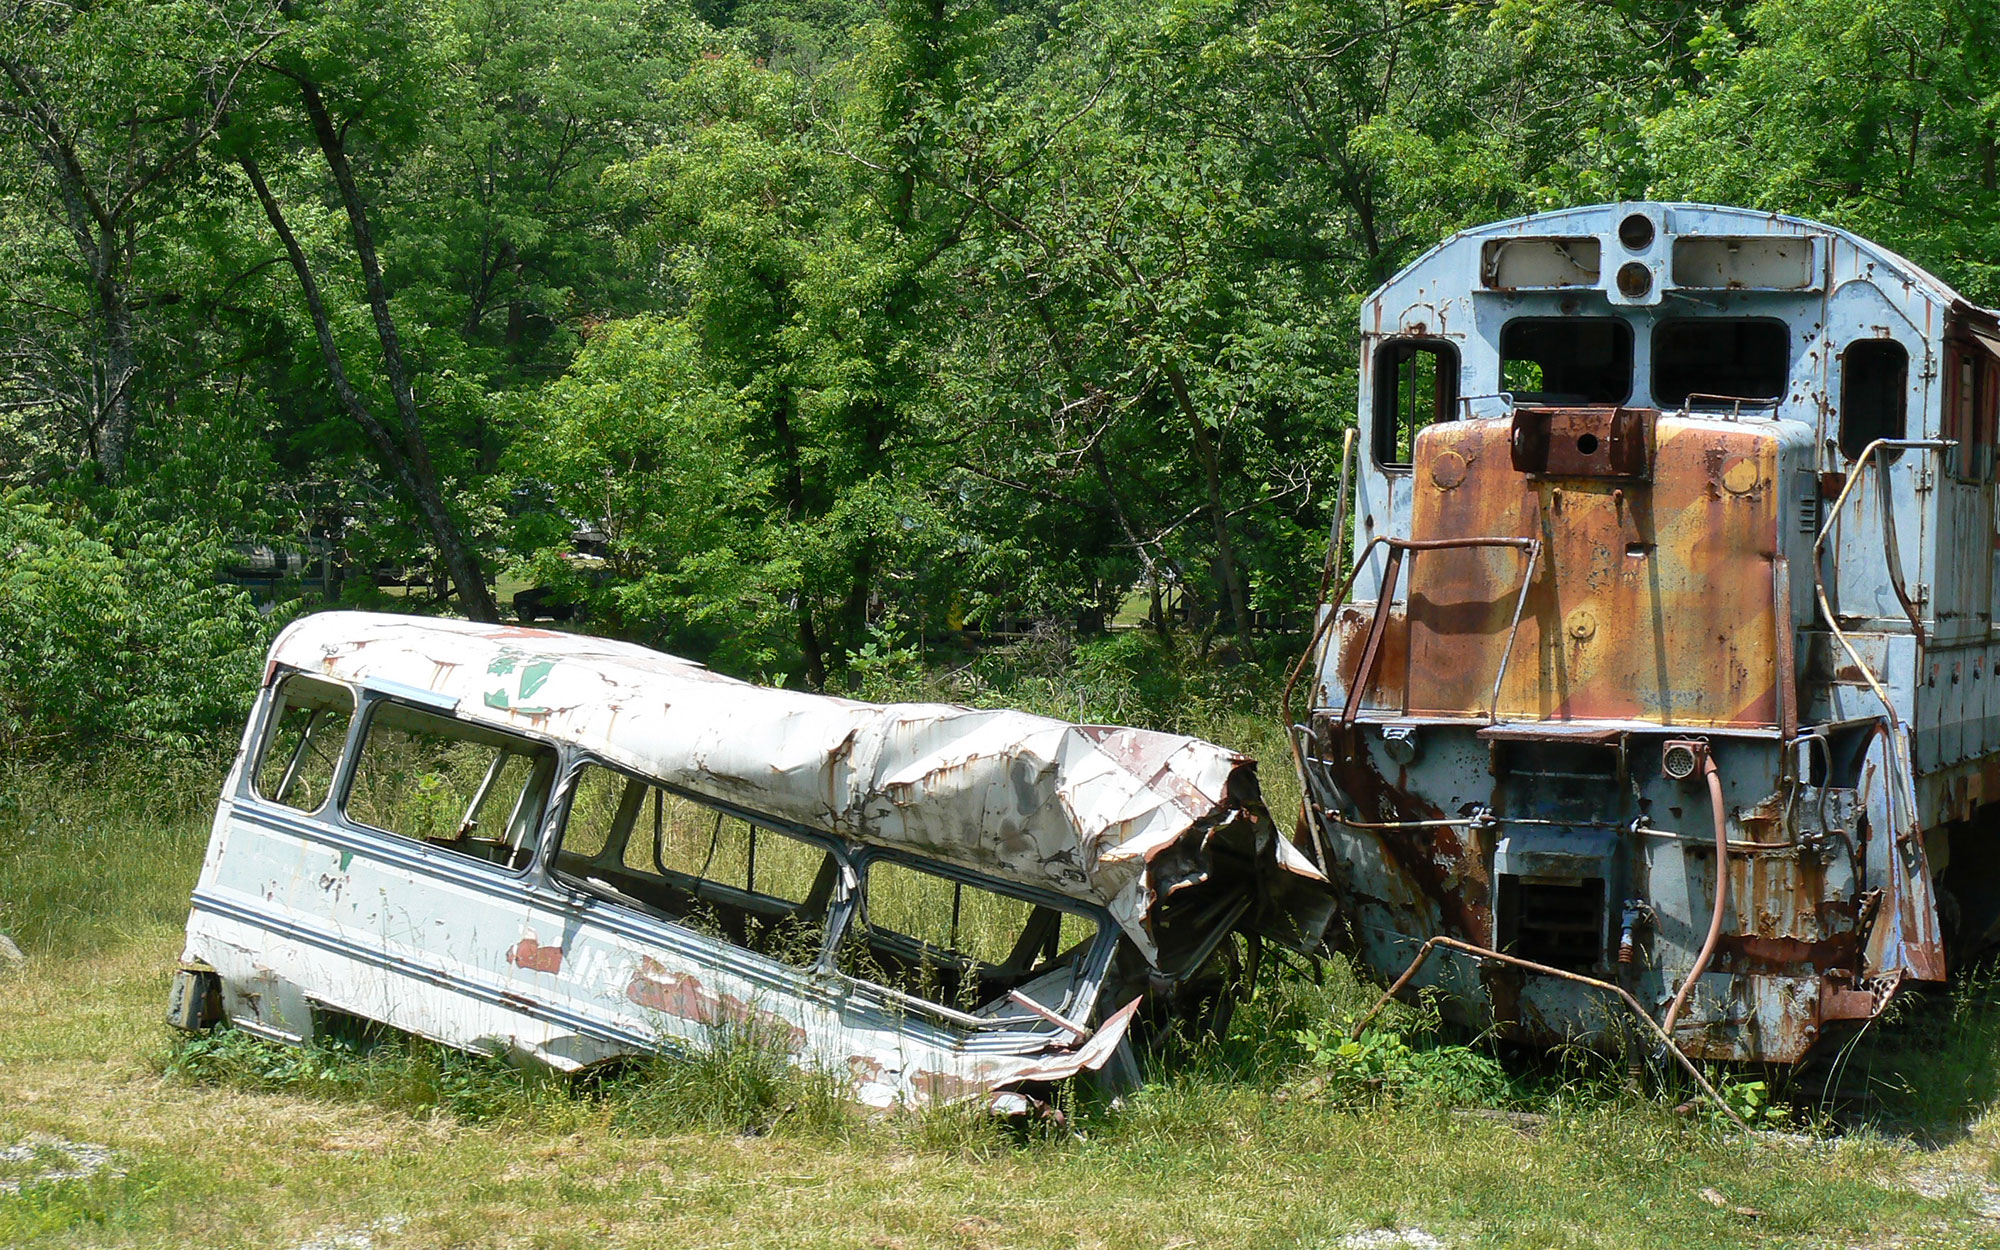 Abandoned Movie Sets You Can Still Visit: The Fugitive Bus Scene in Dillsboro, North Carolina